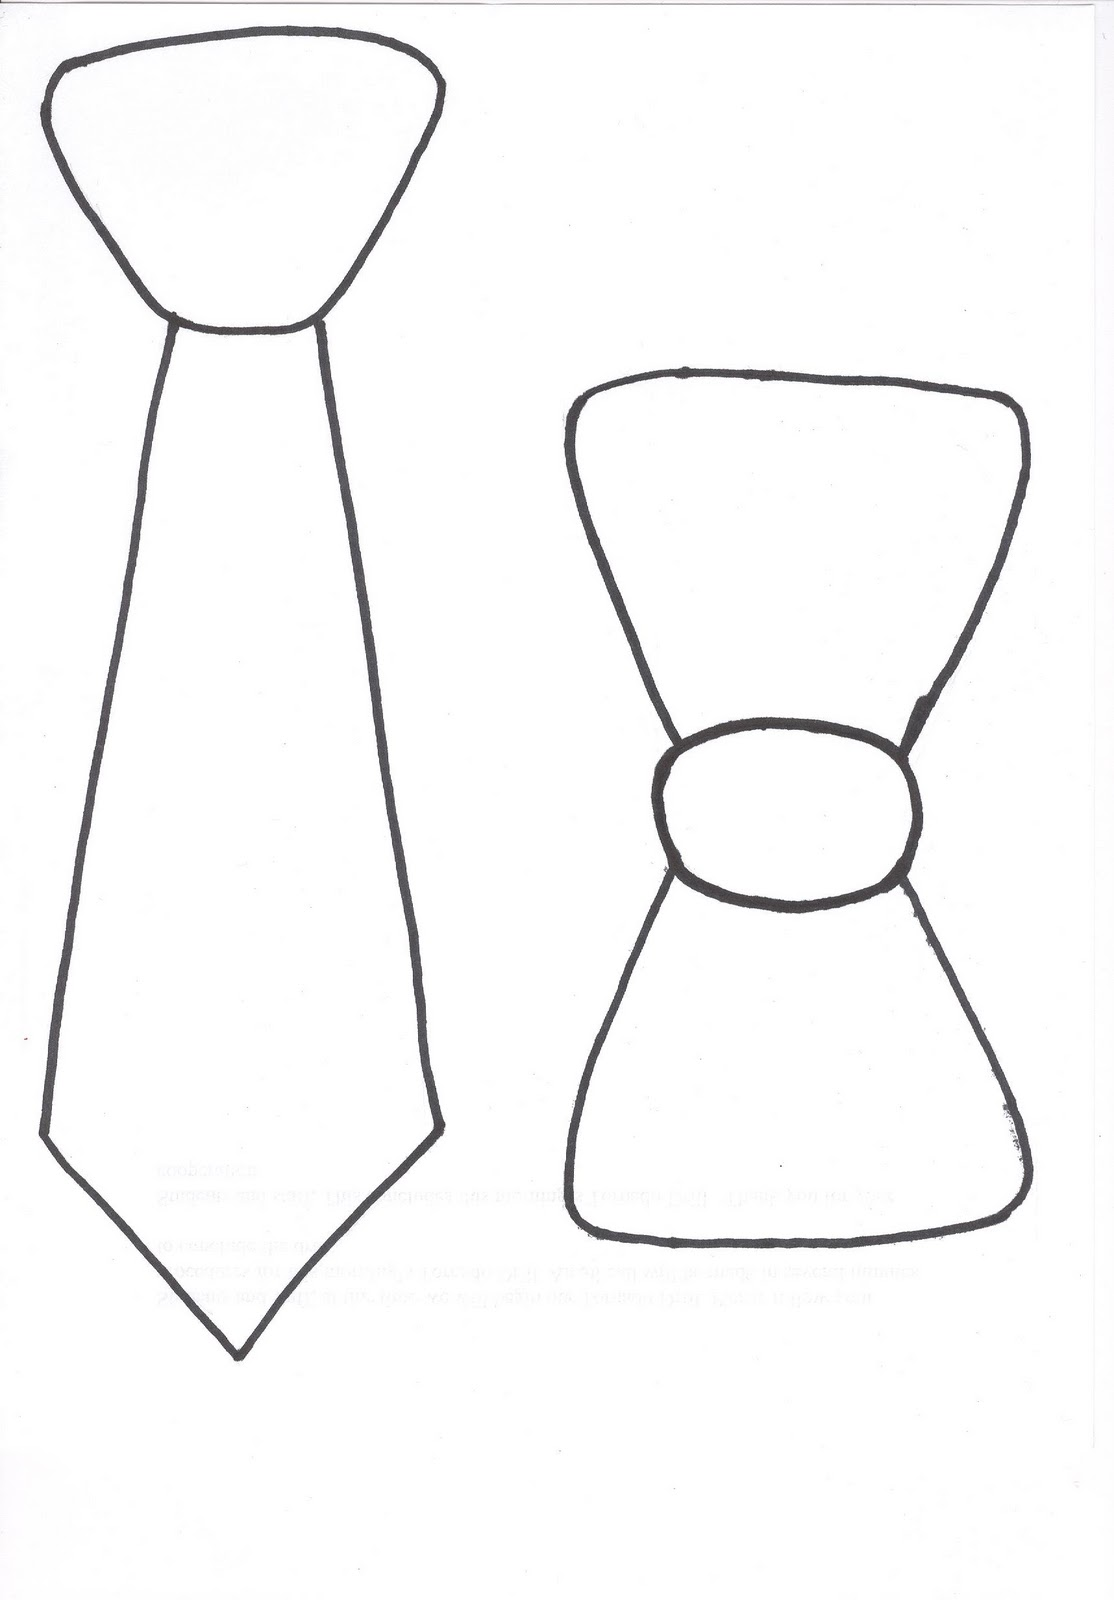 Transformative image intended for printable tie template